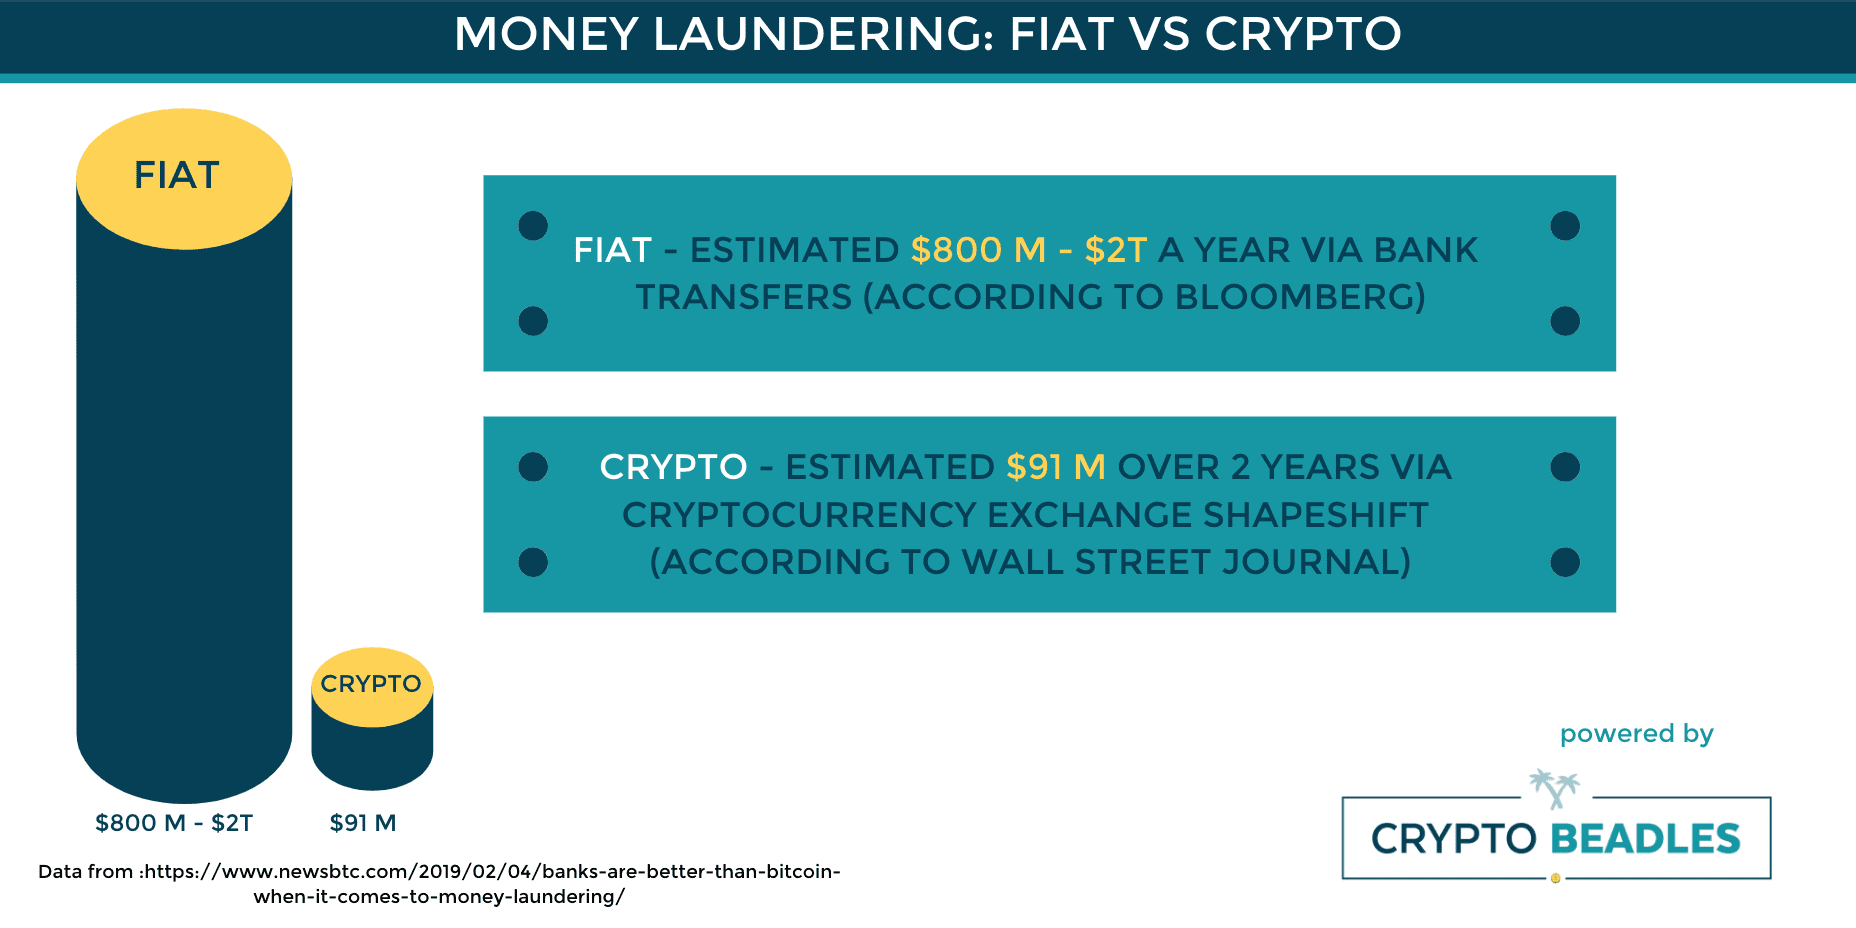 Crypto better than Fiat to prevent Money Laundering?